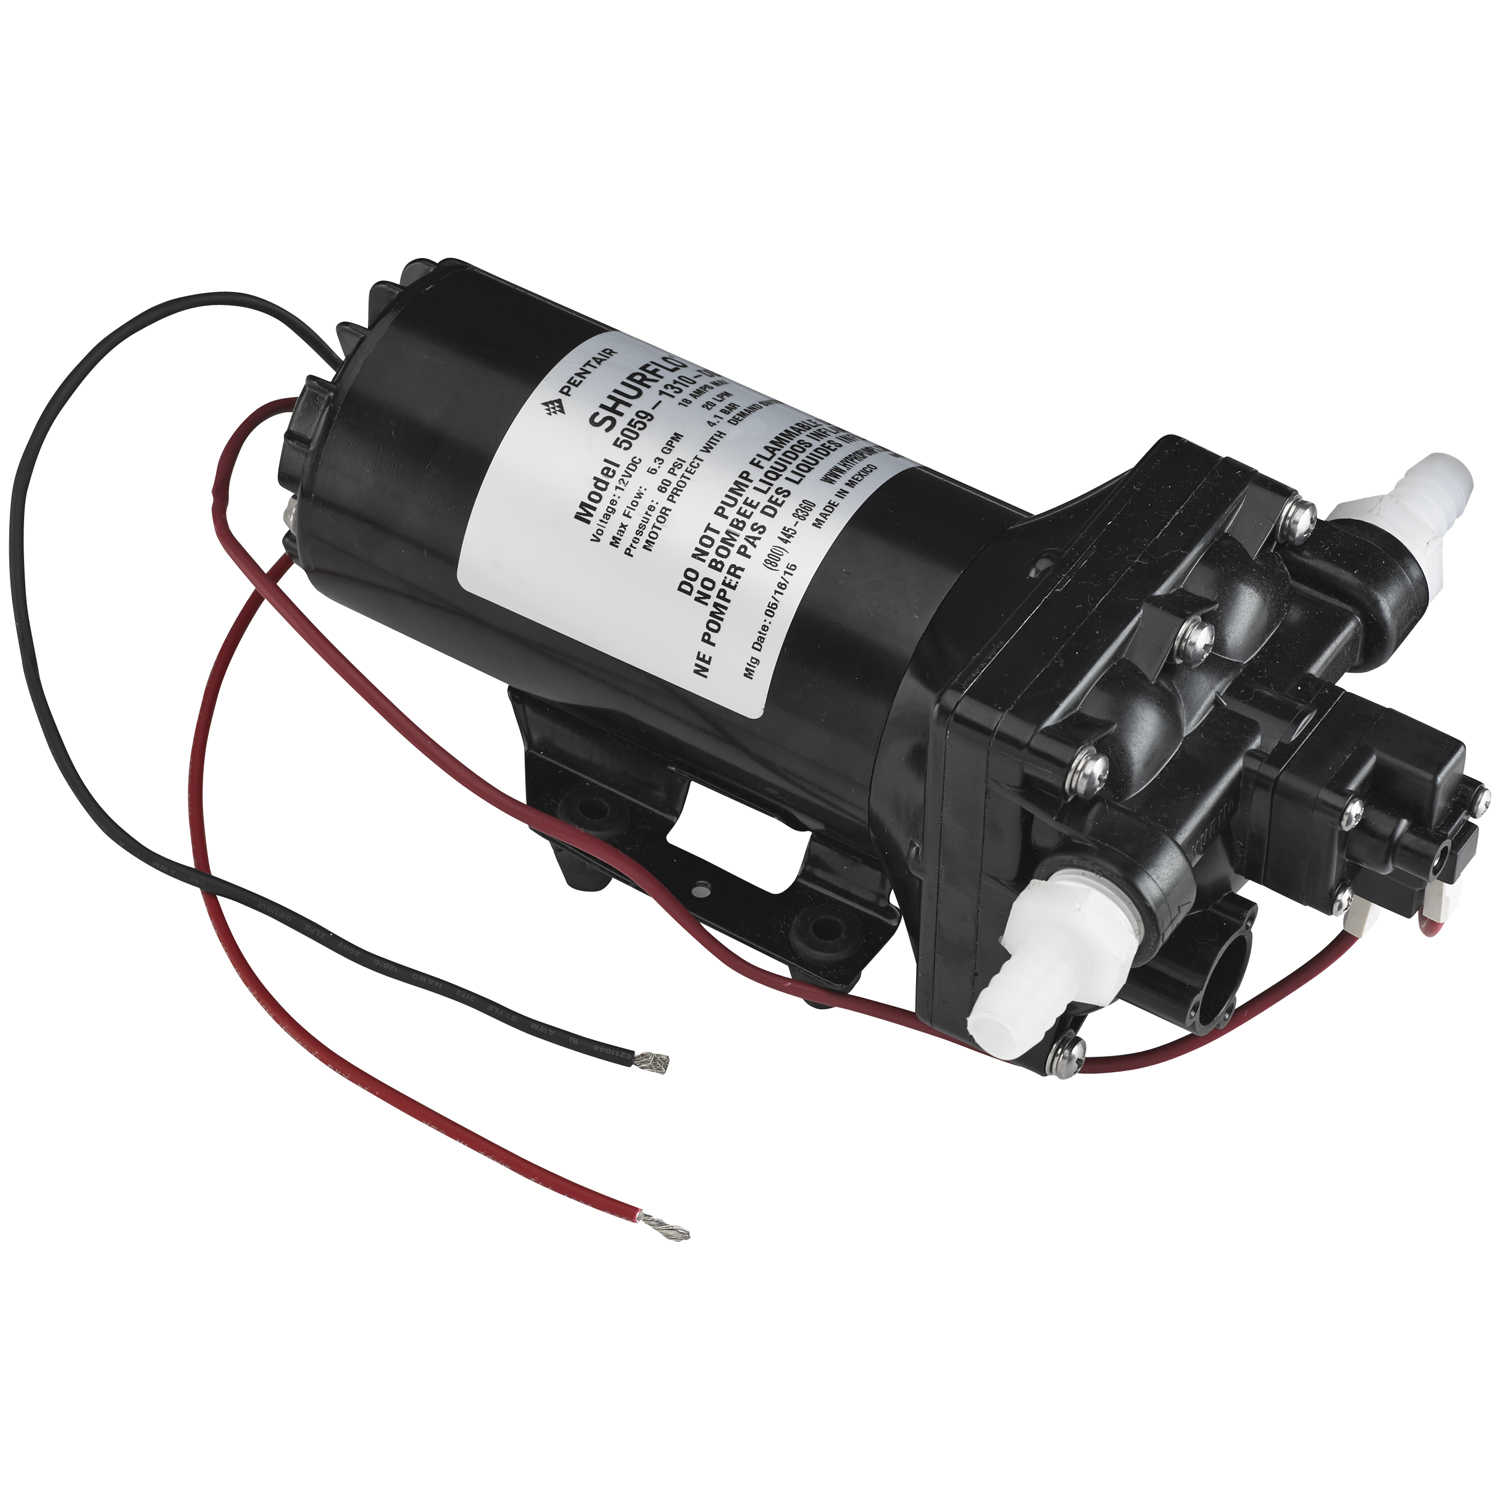 Shurflo 12v dc high flow automatic demand diaphragm pump 53 gpm 60 self priming up to 8 feet chemical resistant materials designed for heavy duty spraying and fluid transfer applications can run dry without damage ccuart Image collections